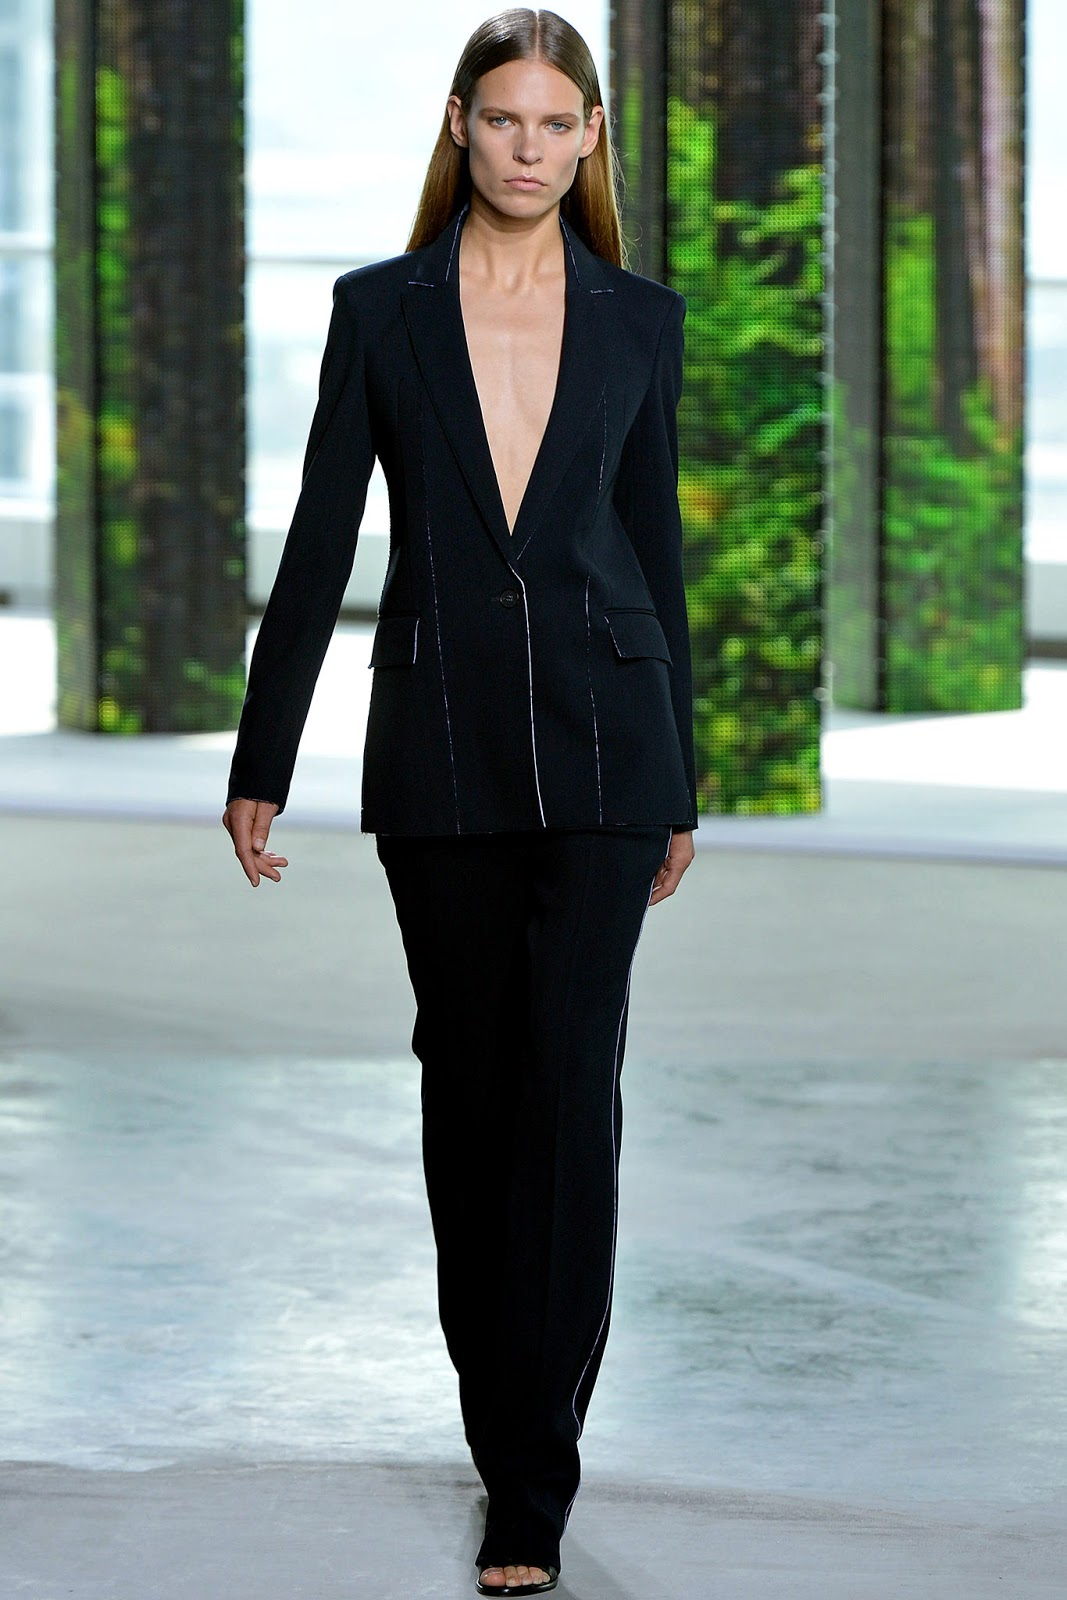 Boss Women / Bottega Veneta / Spring/Summer 2015 trends / trouser suit / styling tips and outfit inspiration / via fashioned by love british fashion blog